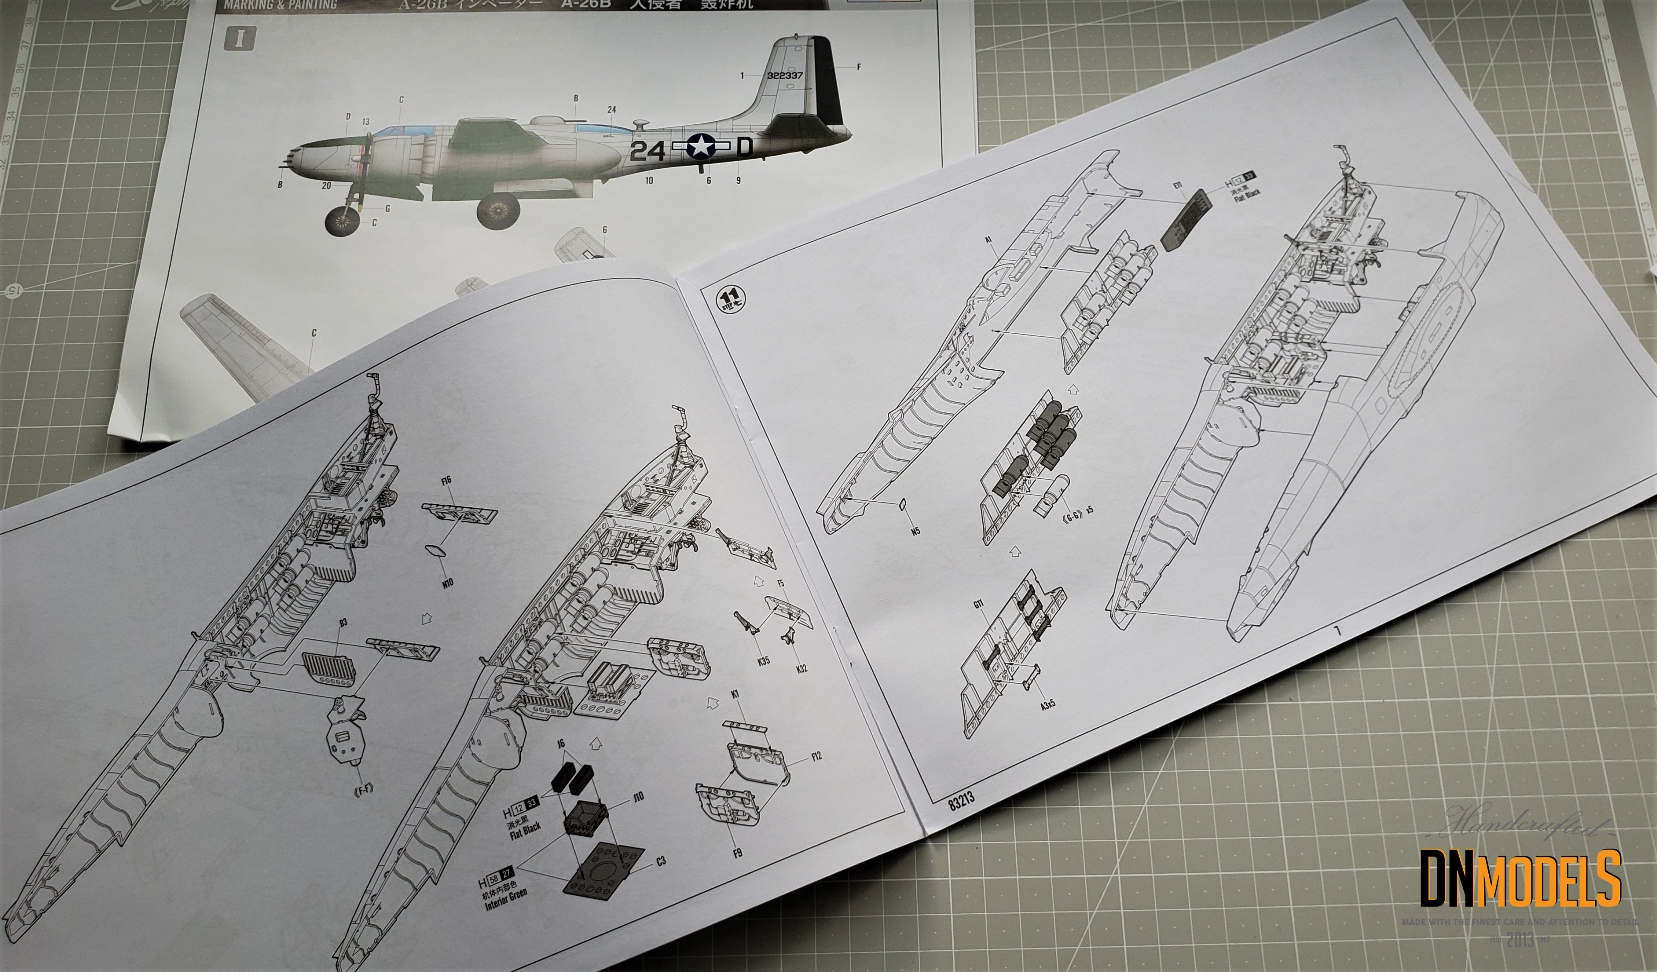 A26B Invader Hobby Boss 83213 review dn models masks for scale models instruction sheet